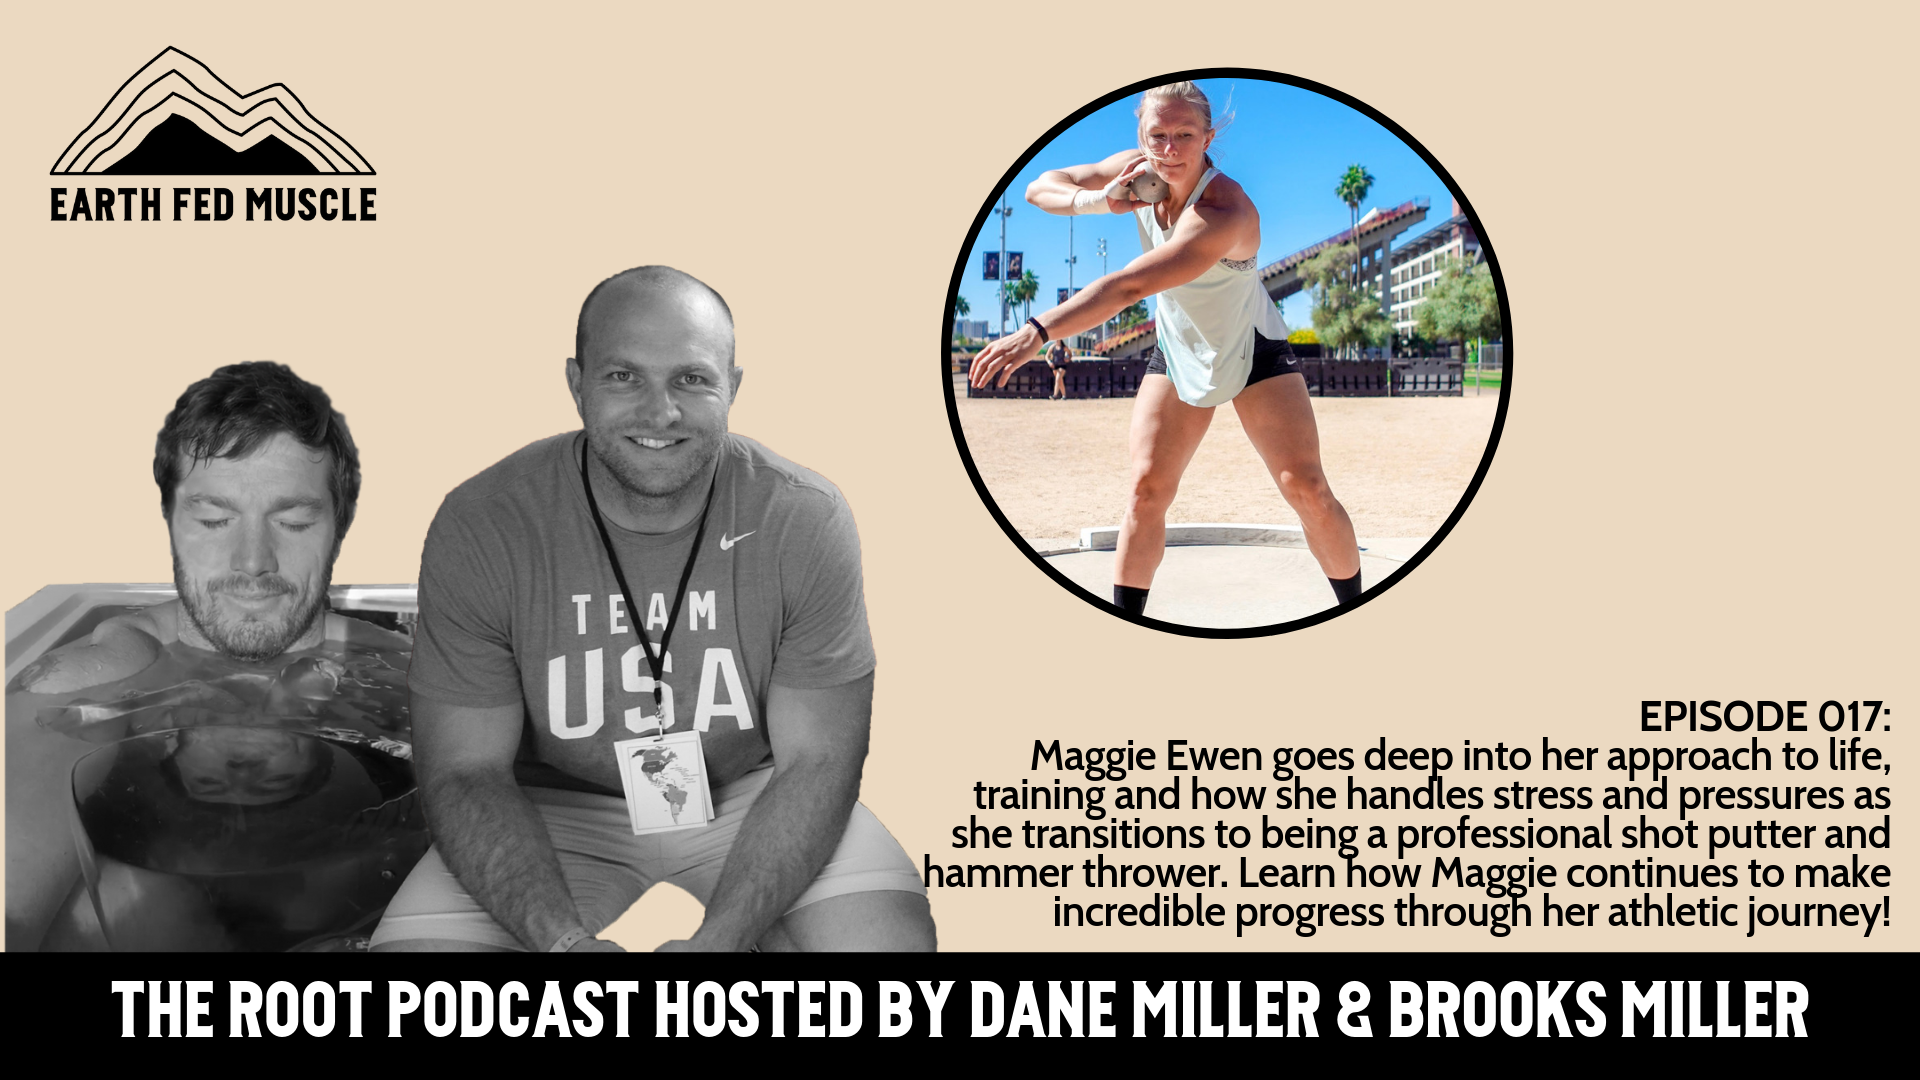 017: THE ROOT - MAGGIE EWEN - THE GREATEST COLLEGIATE THROWER OF ALL TIME